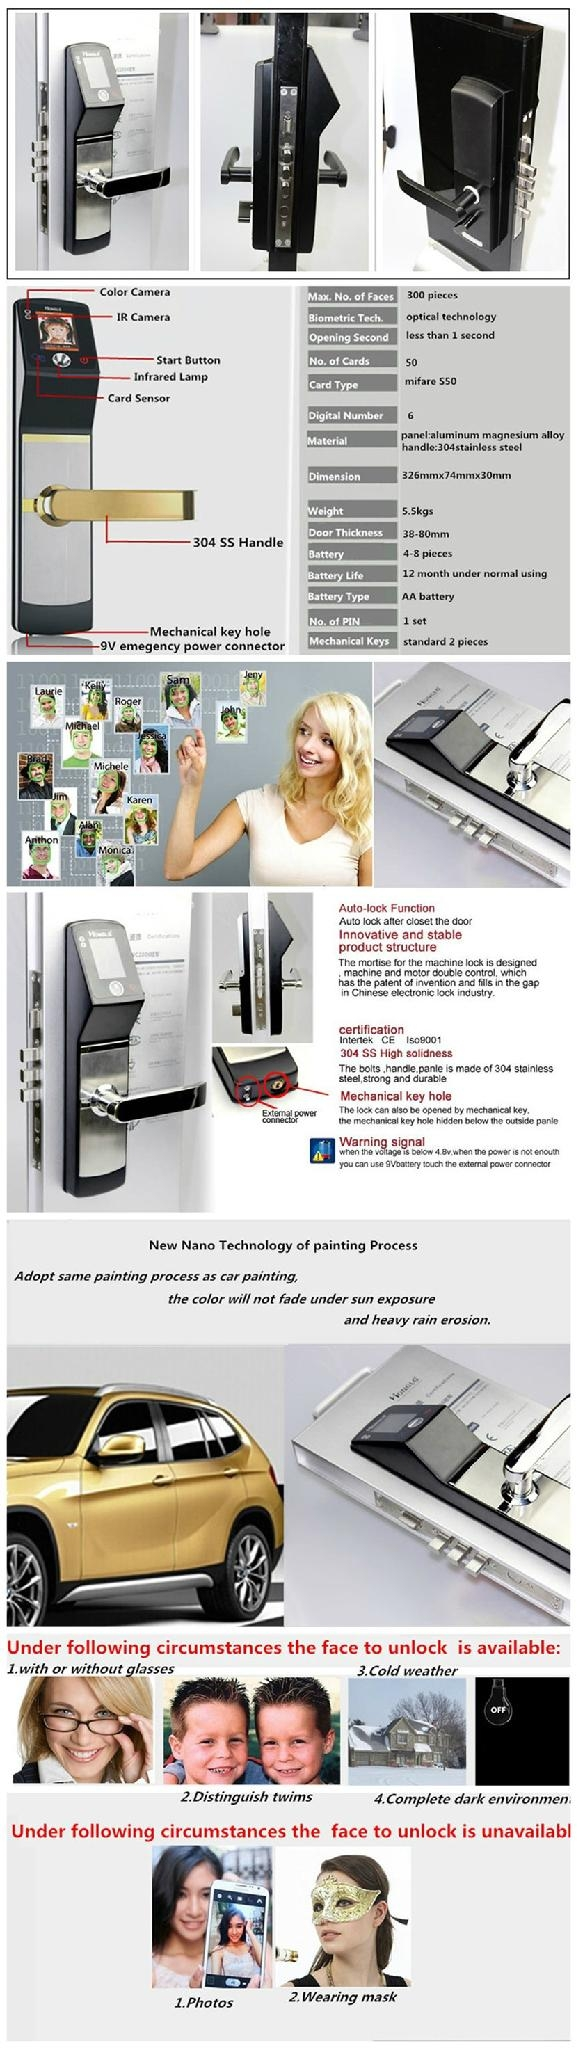 High identification speed Biometric Face Recognition sliding wooden door locks 7